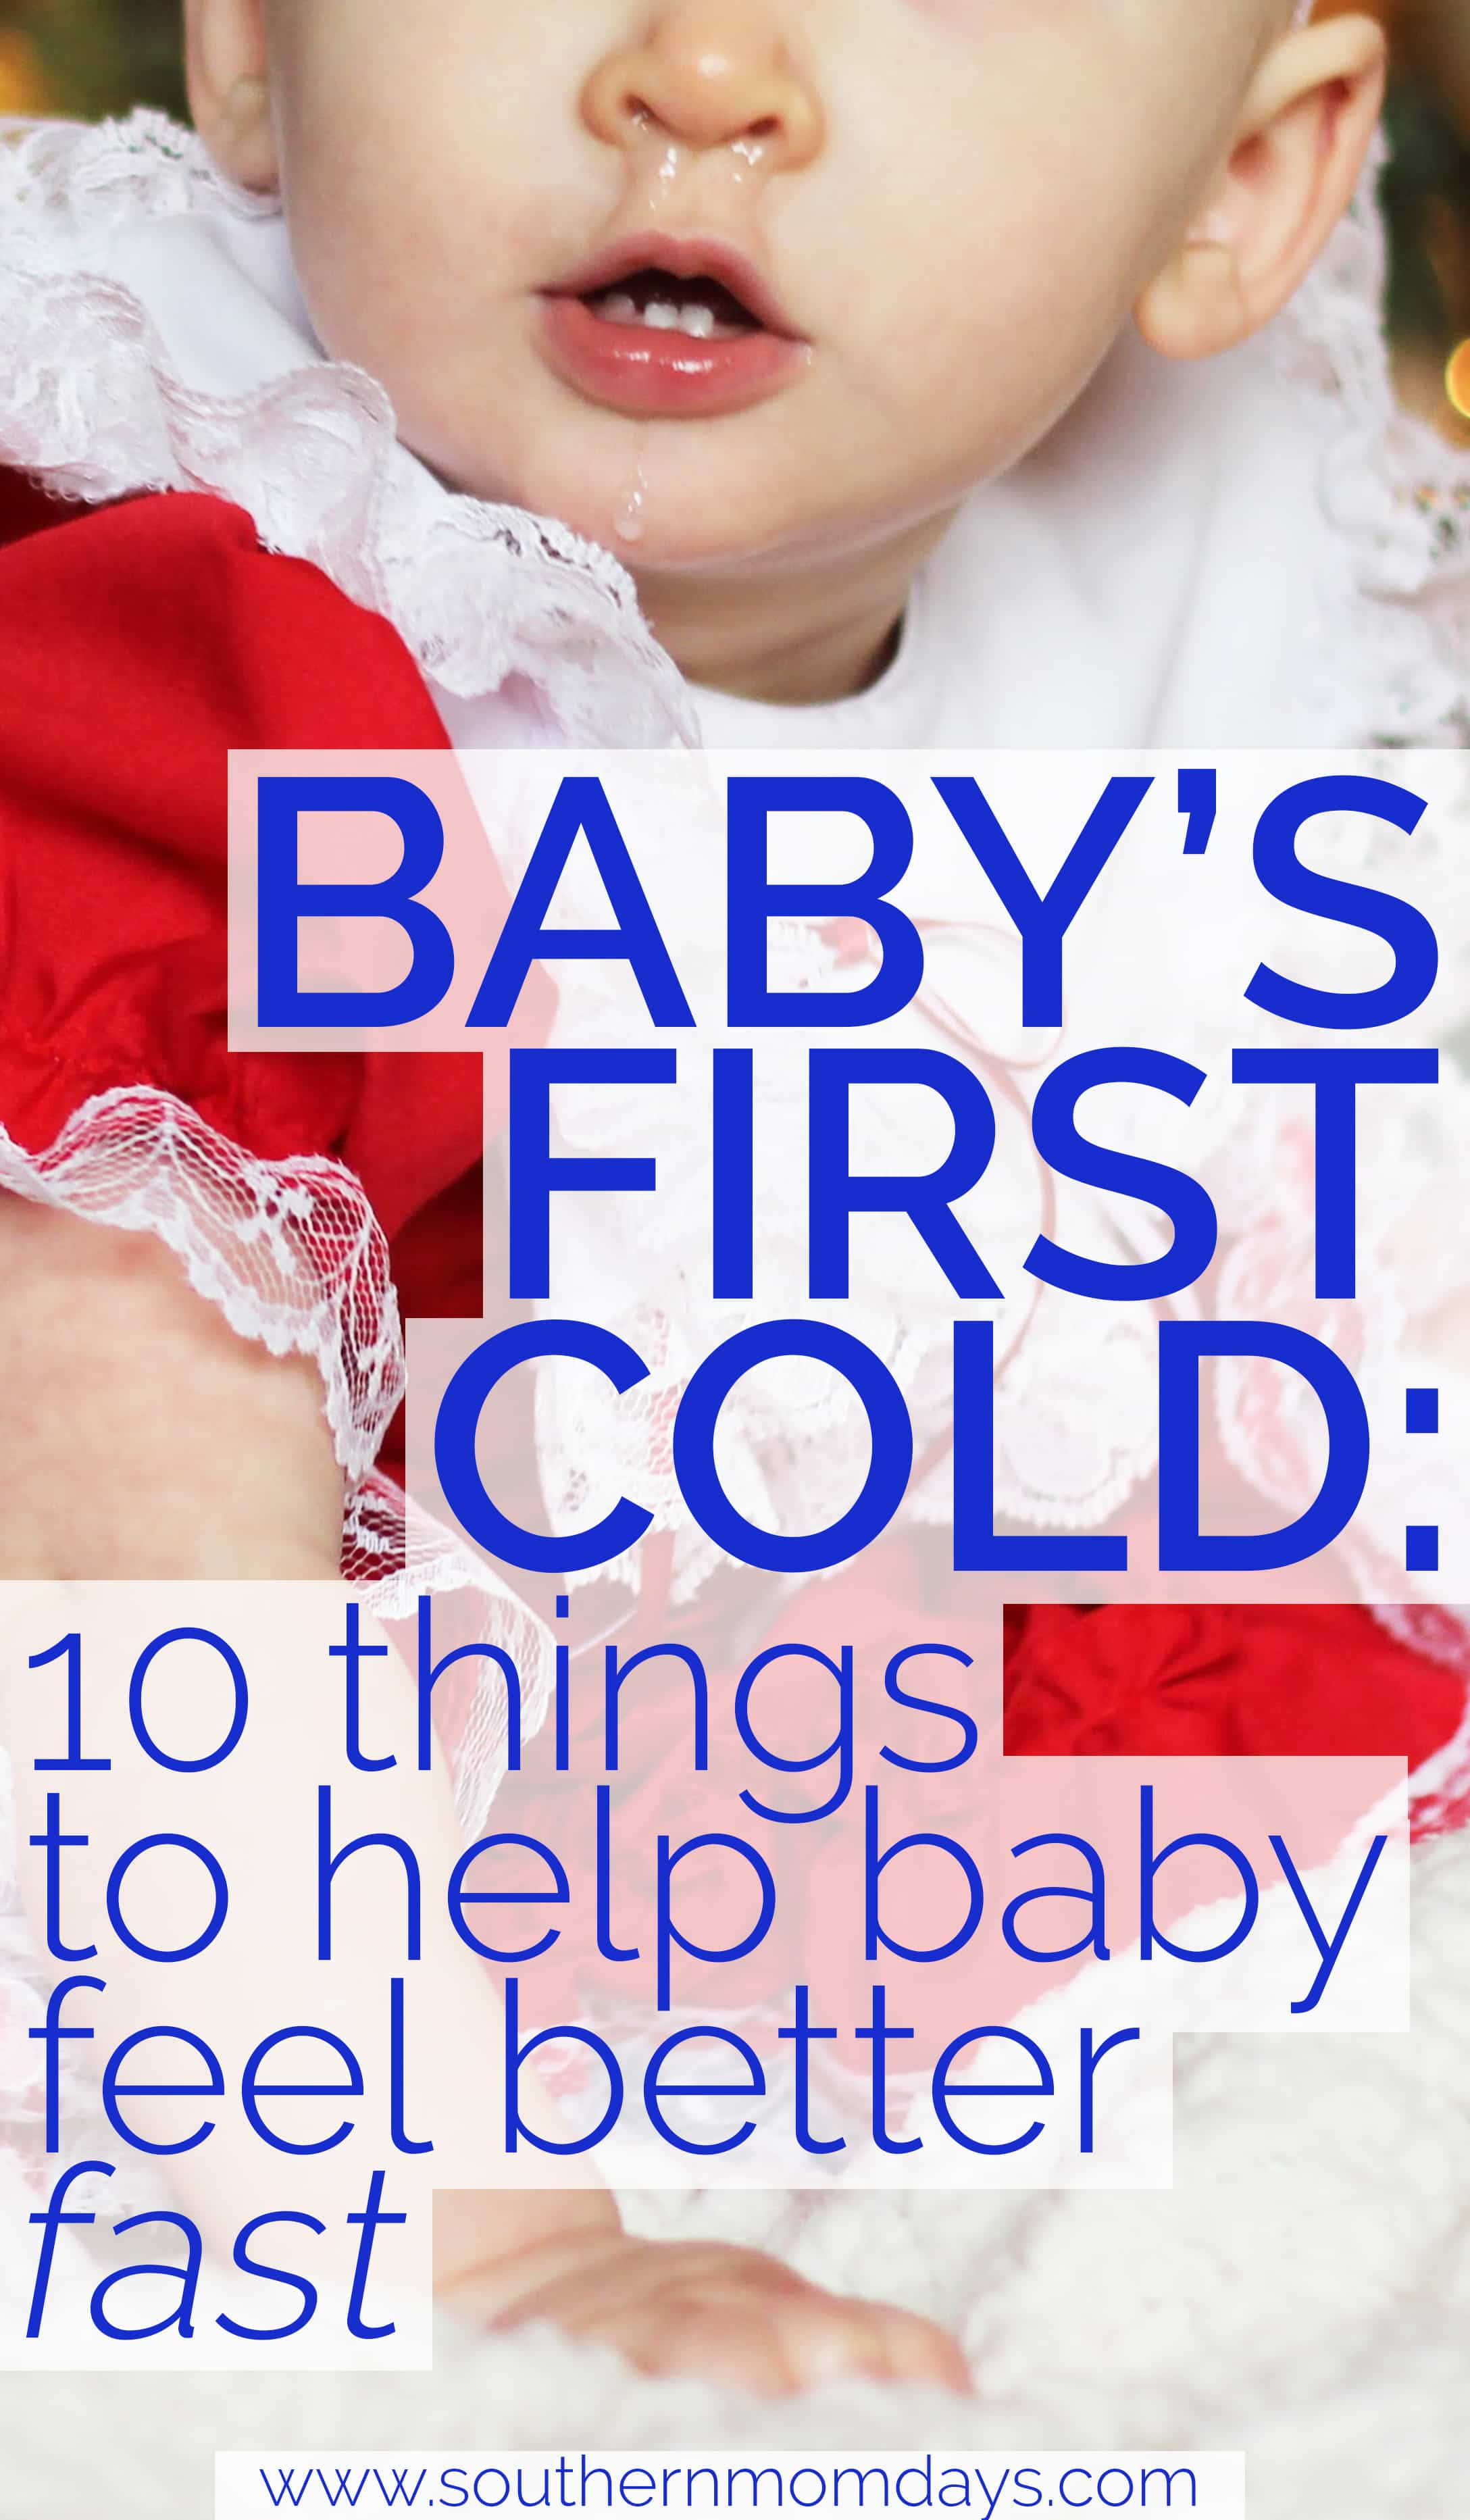 Baby's First Cold: 10 Things You Need to Get Through (Fast!) featured on the Southern Momdays blog